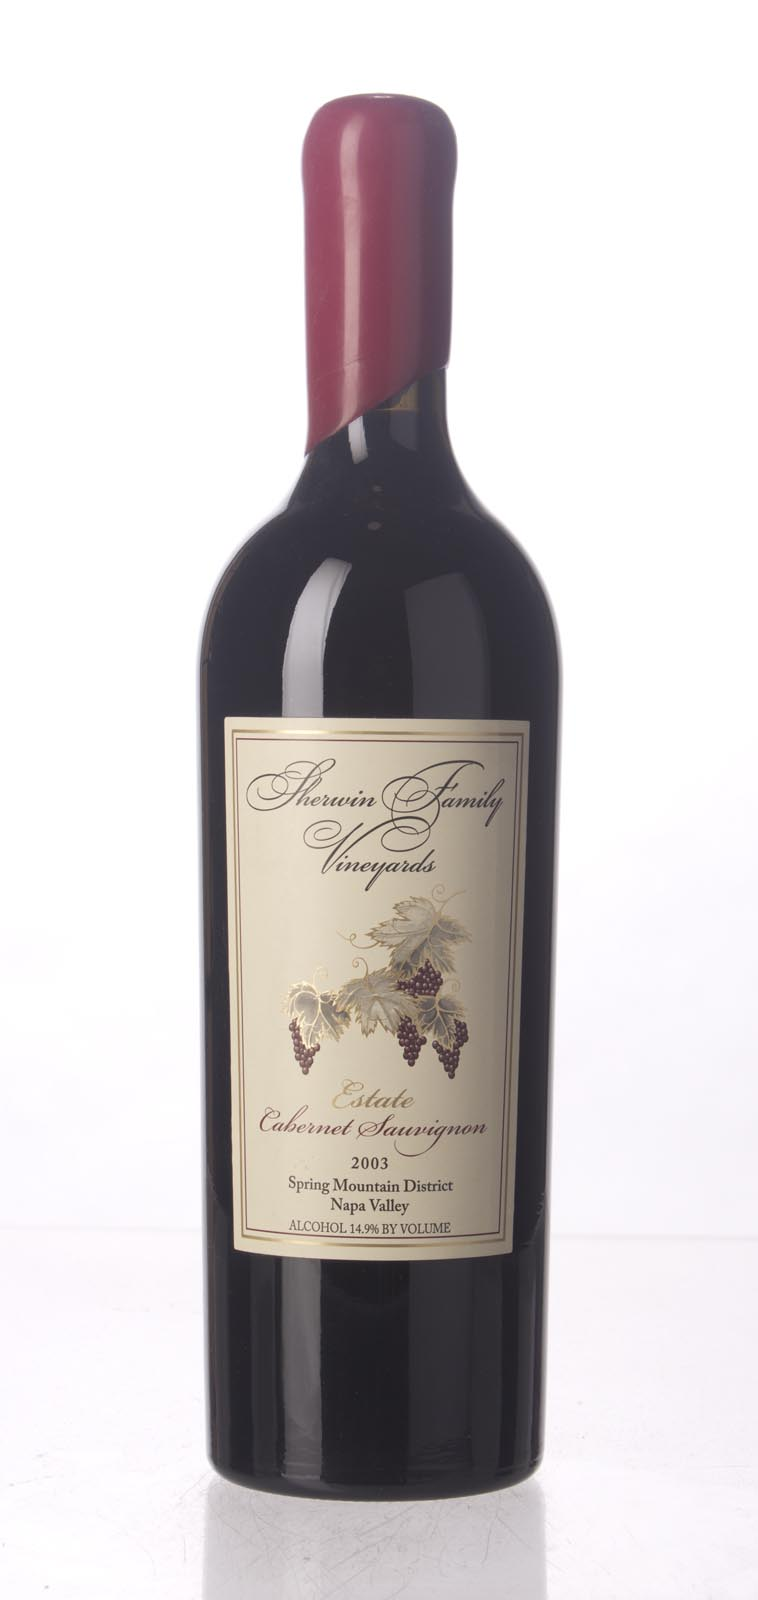 Sherwin Family Cabernet Sauvignon Spring Mountain 2003, 750mL (WS92) from The BPW - Merchants of rare and fine wines.